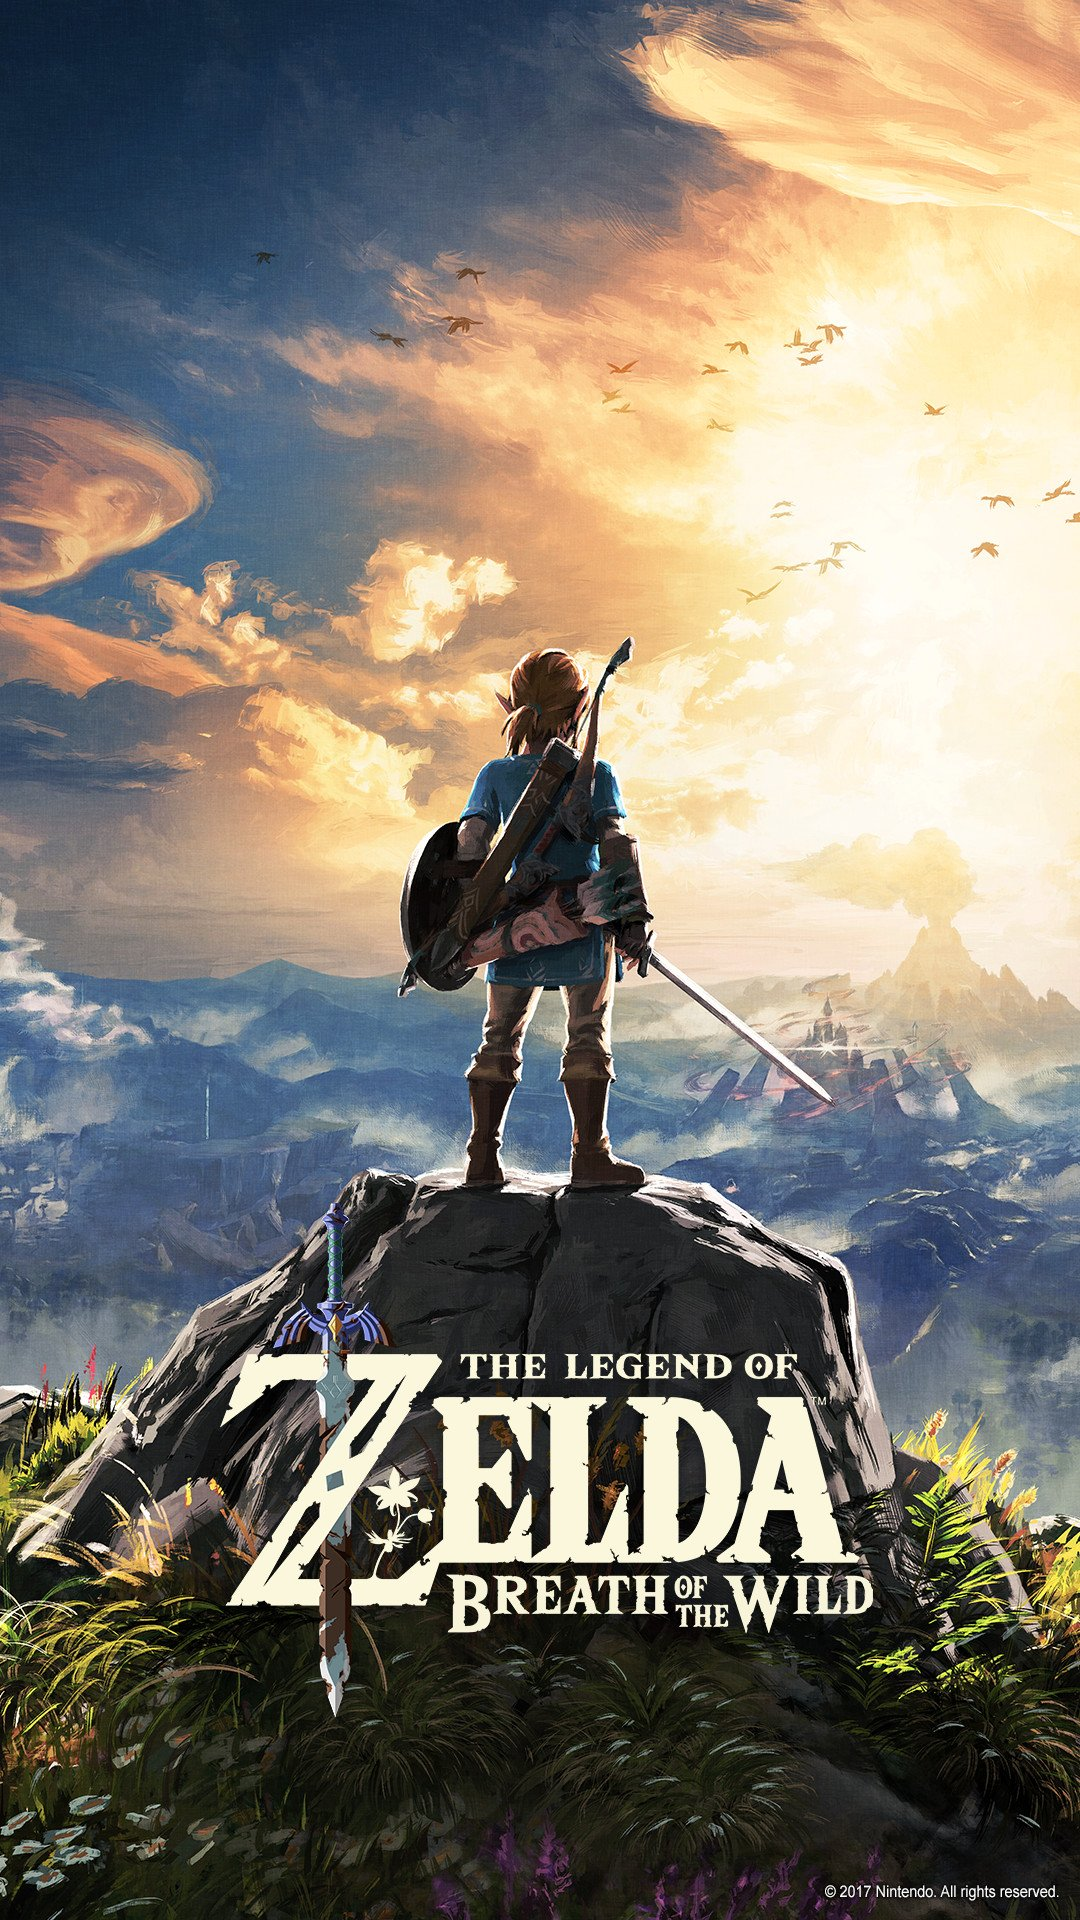 The Legend of Zelda Breath of the Wild for the Nintendo Switch 1080x1920